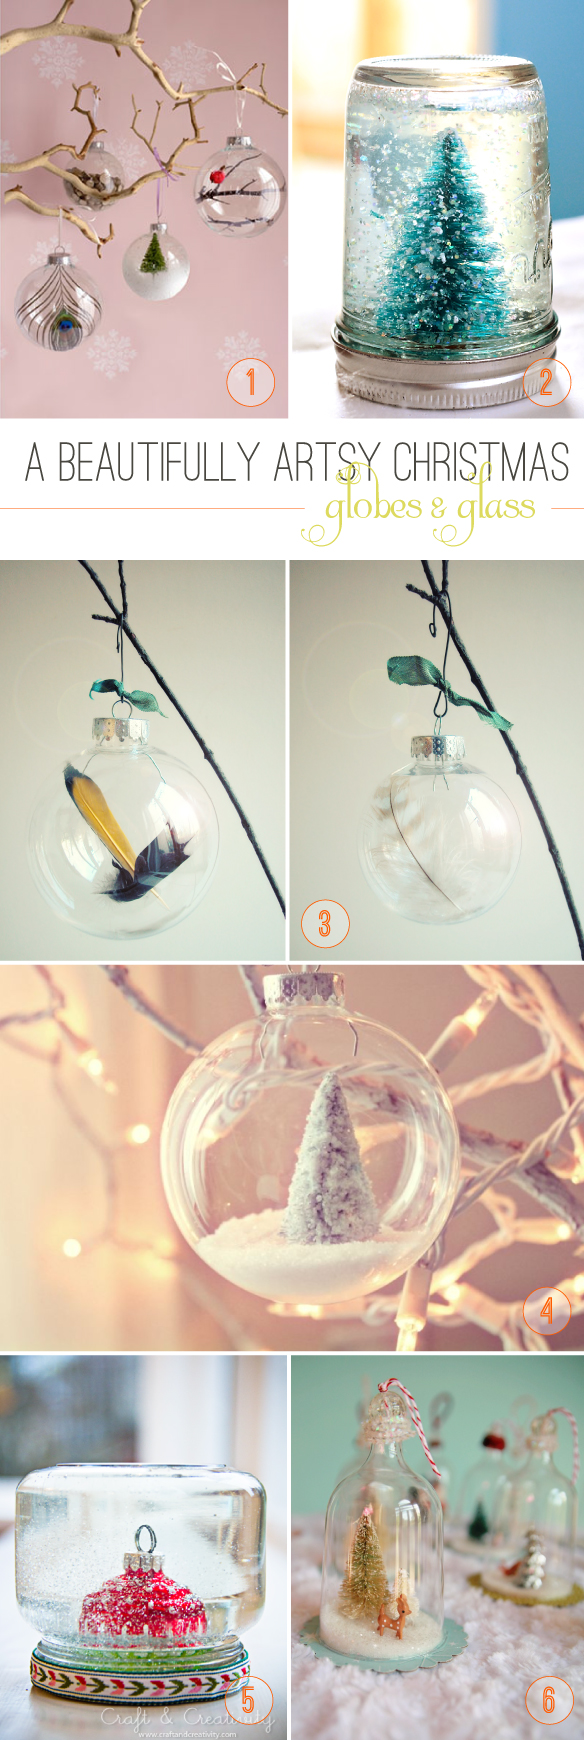 Beautiful Hello DIY Christmas Globes and Glass